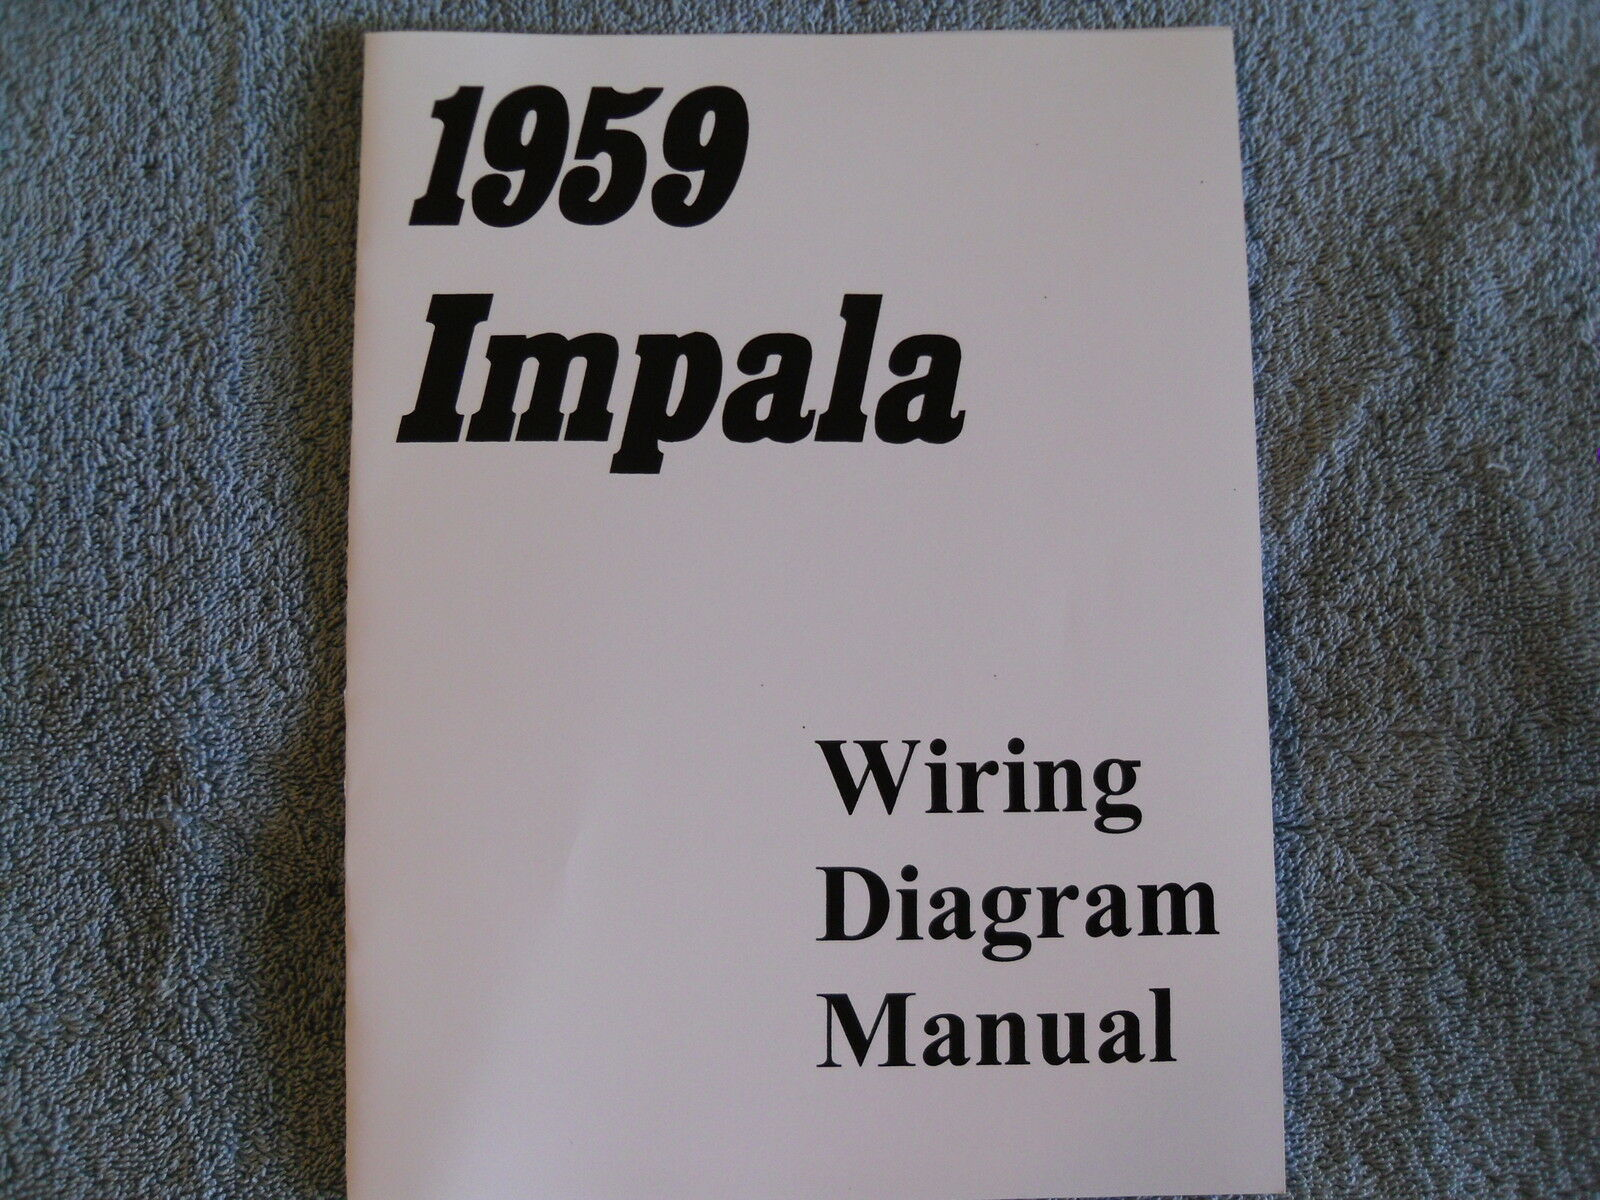 59 impala wiring diagram schematic diagrams rh ogmconsulting co 2005 Impala Wiring Diagram 2005 Impala Wiring Diagram